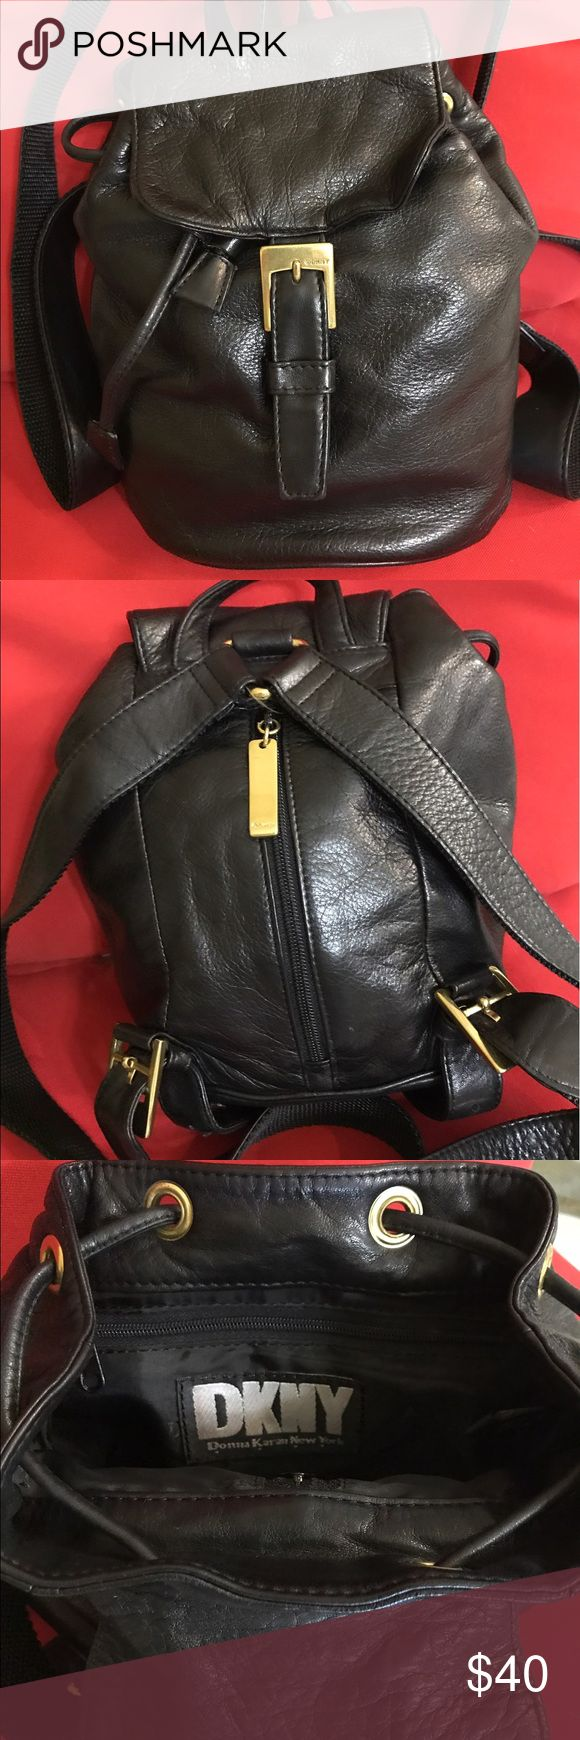 """DKNY Petite Backpack Petite H 9"""" W 8"""" Black leather backpack. Adjustable straps. Magnetic clasp, drawstring. Zipper in back for easy access. Straps are leather and nylon. Black interior. Great condition. DKNY Bags Backpacks"""